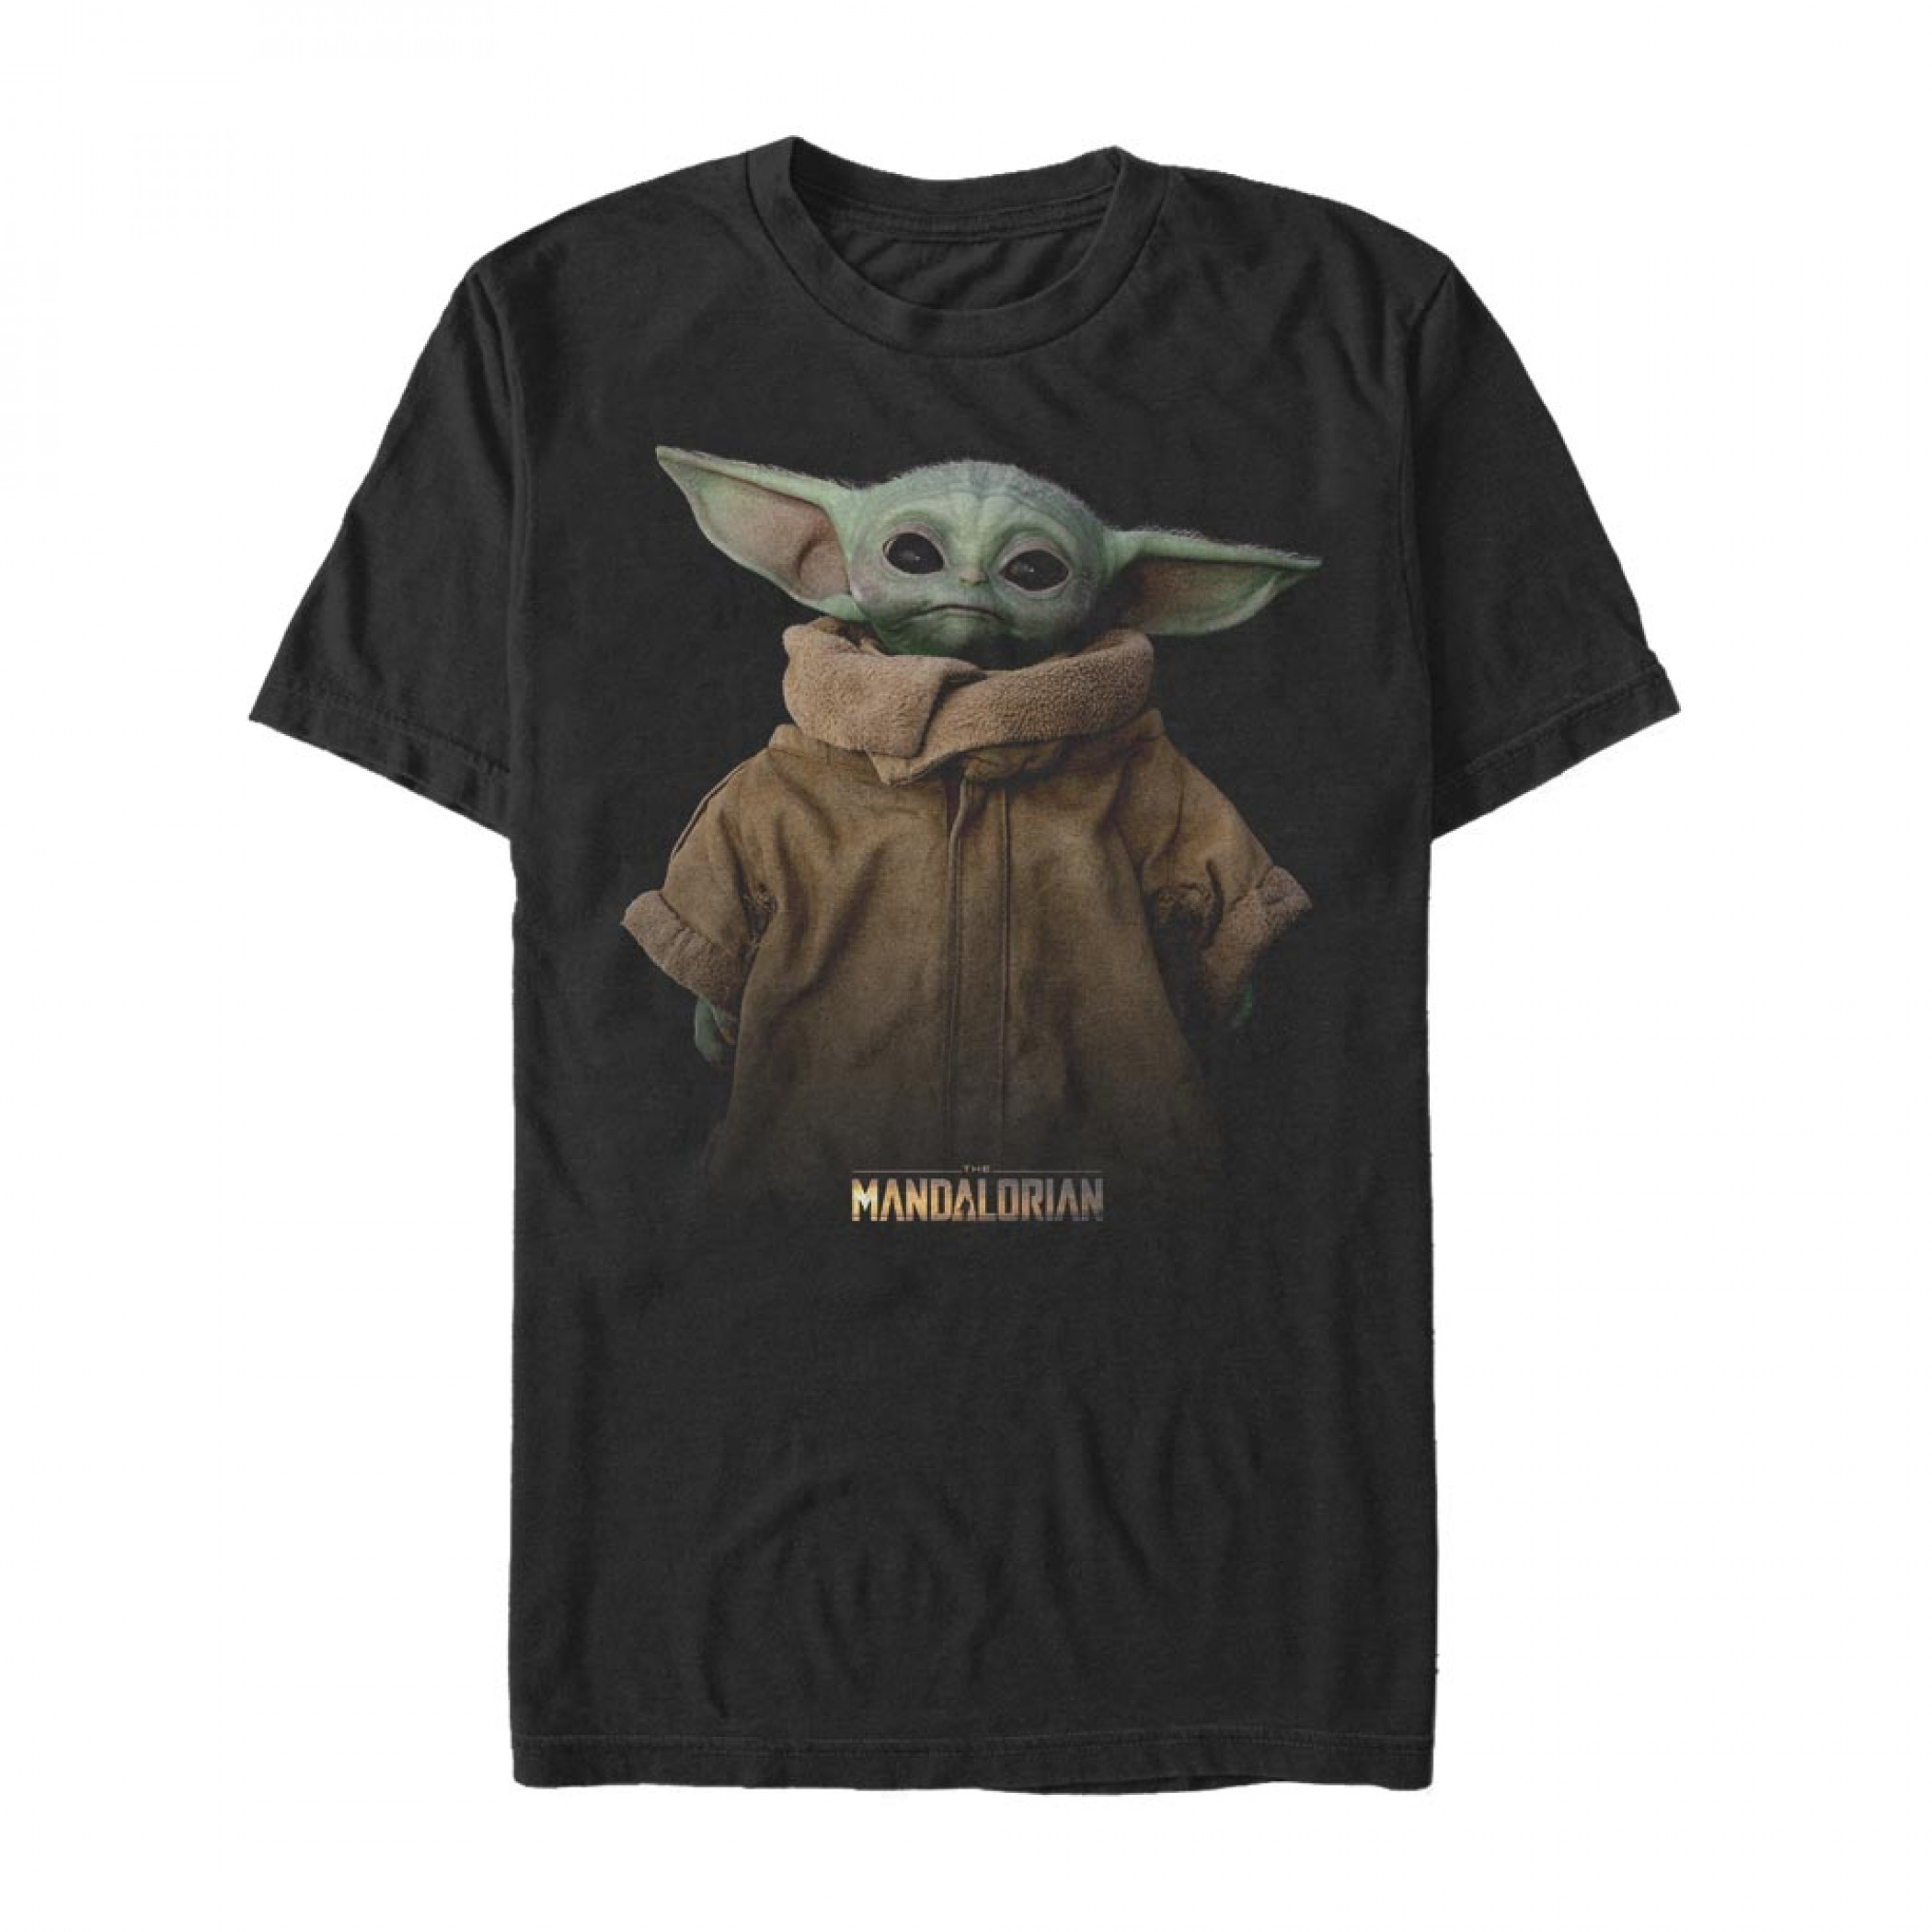 Star Wars The Mandalorian The Child Jacket T-Shirt